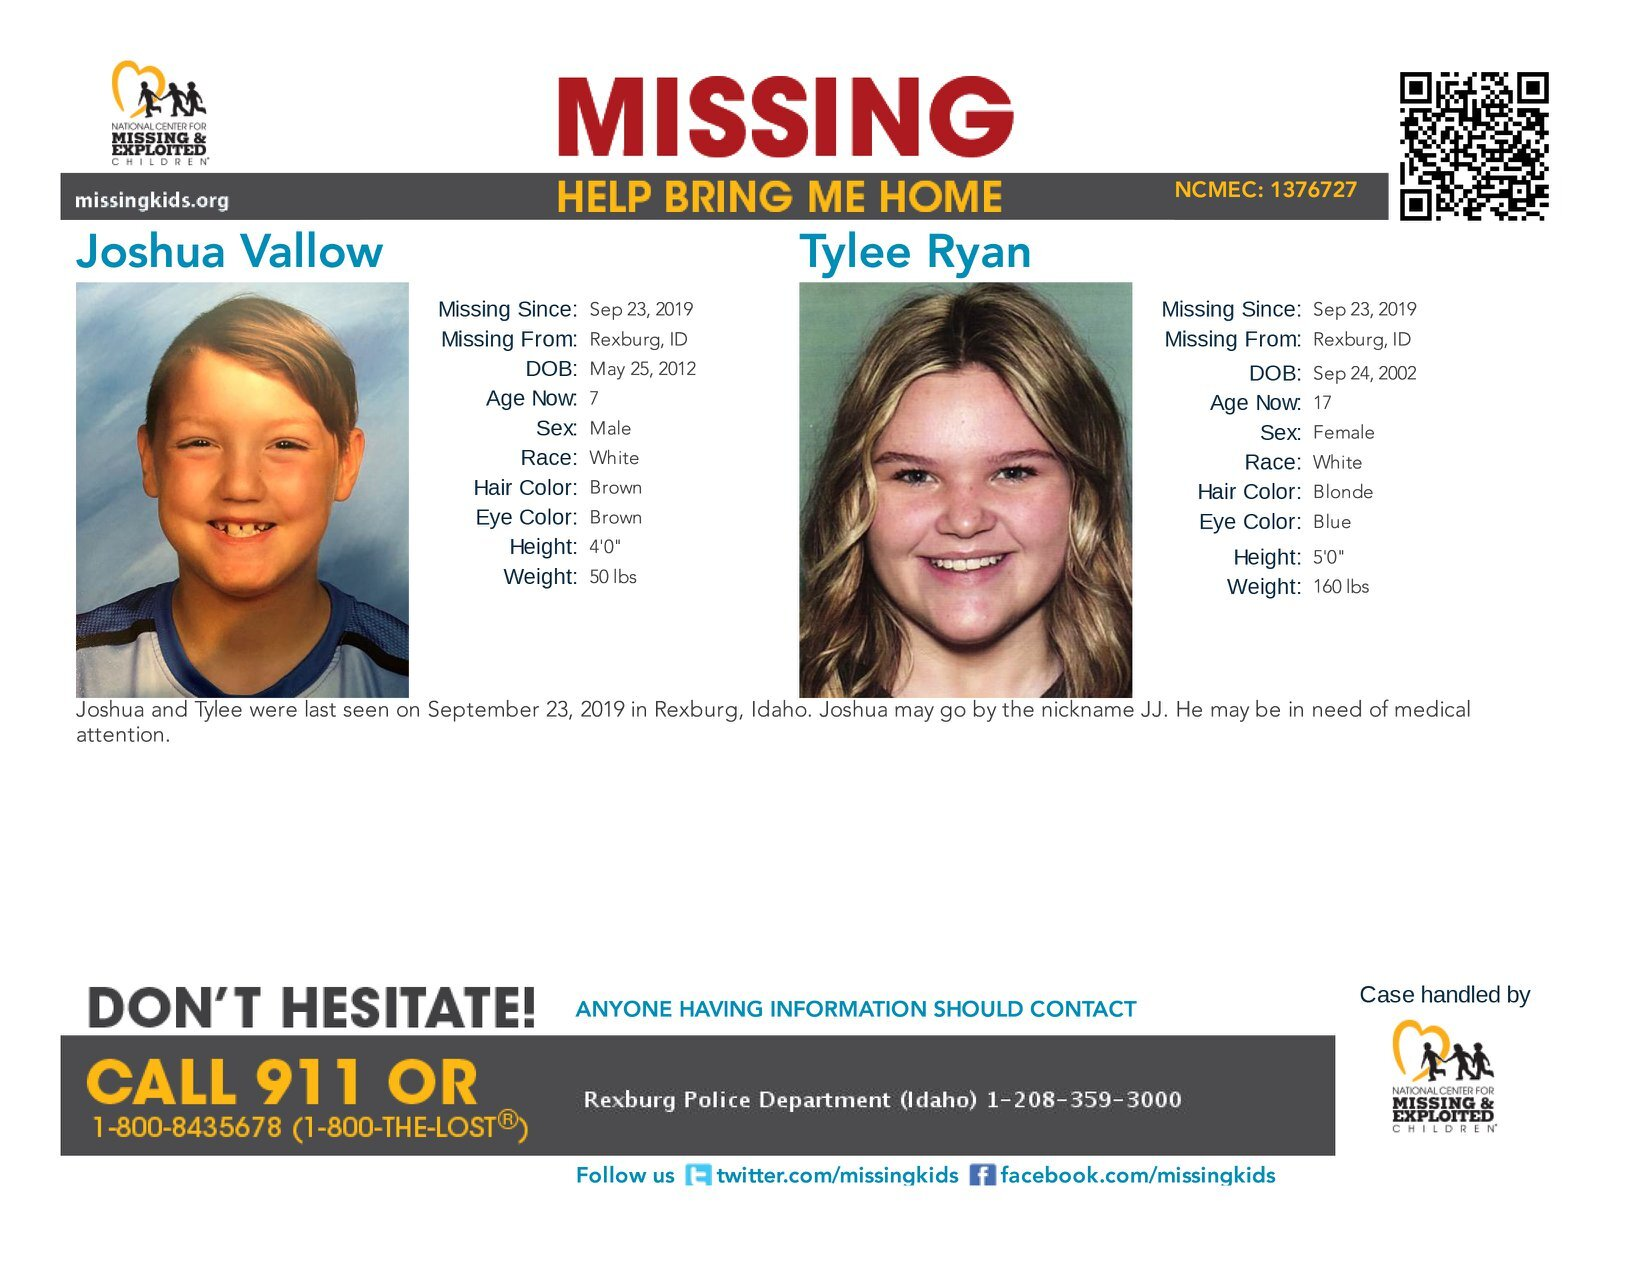 Photos: Police seeking couple for questioning in Rexburg children's disappearance and deaths of former spouses